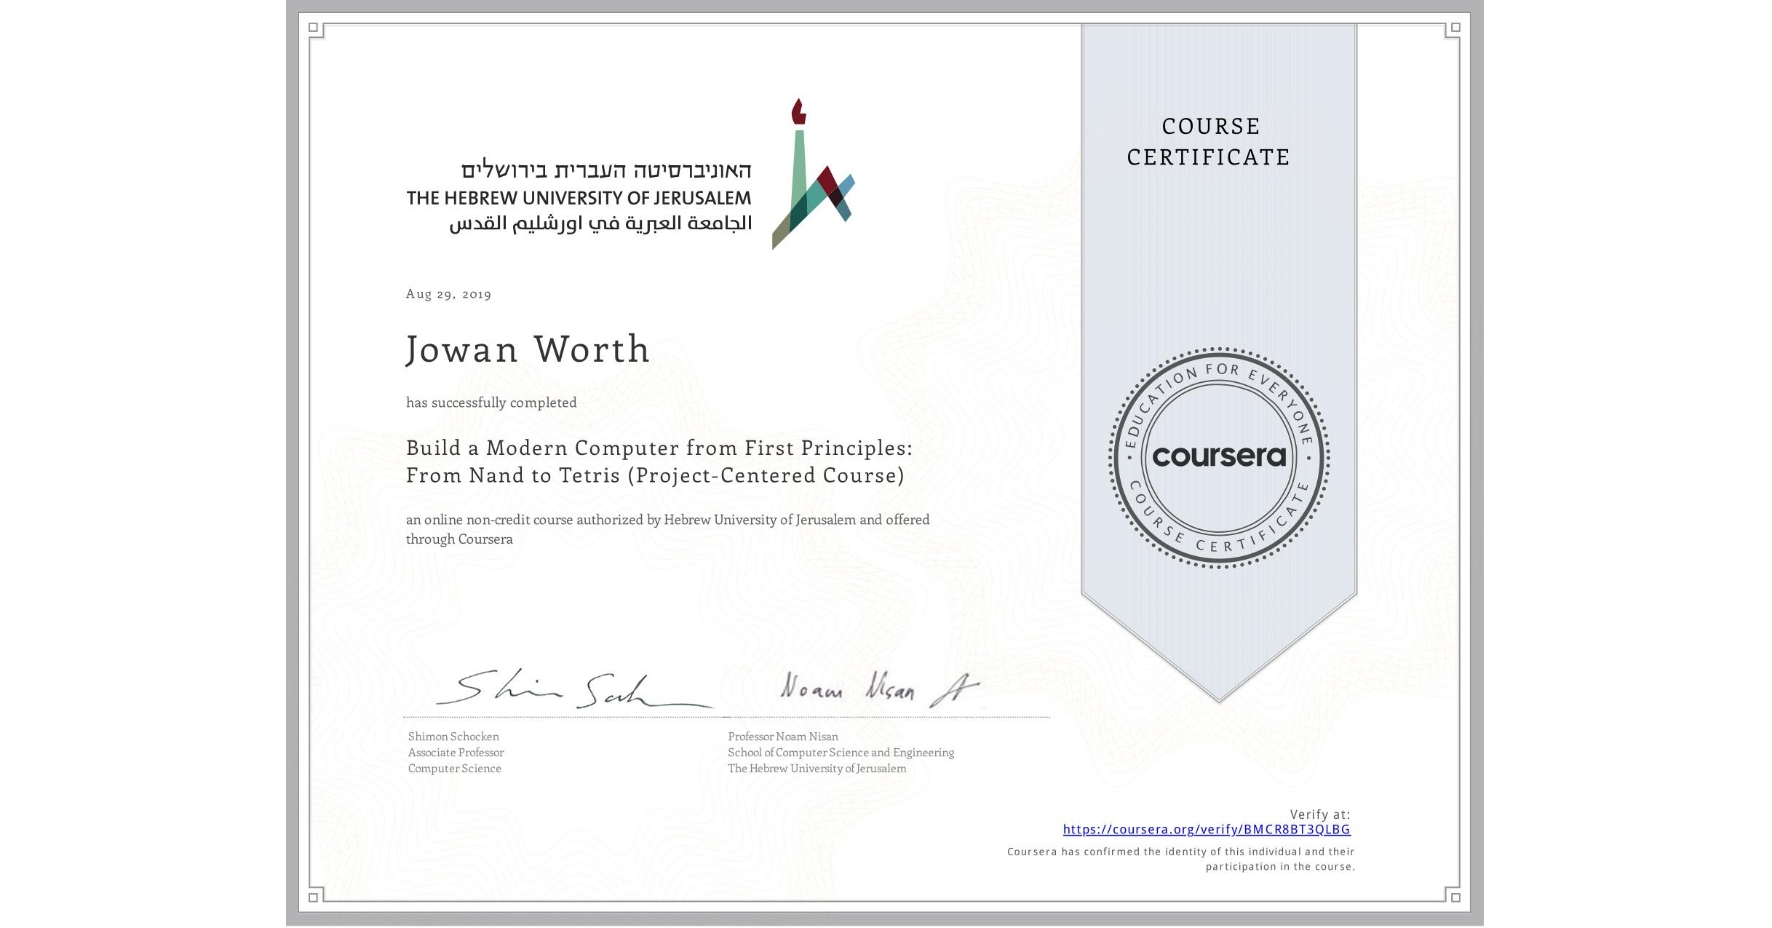 View certificate for Jowan Worth, Build a Modern Computer from First Principles: From Nand to Tetris (Project-Centered Course), an online non-credit course authorized by Hebrew University of Jerusalem and offered through Coursera